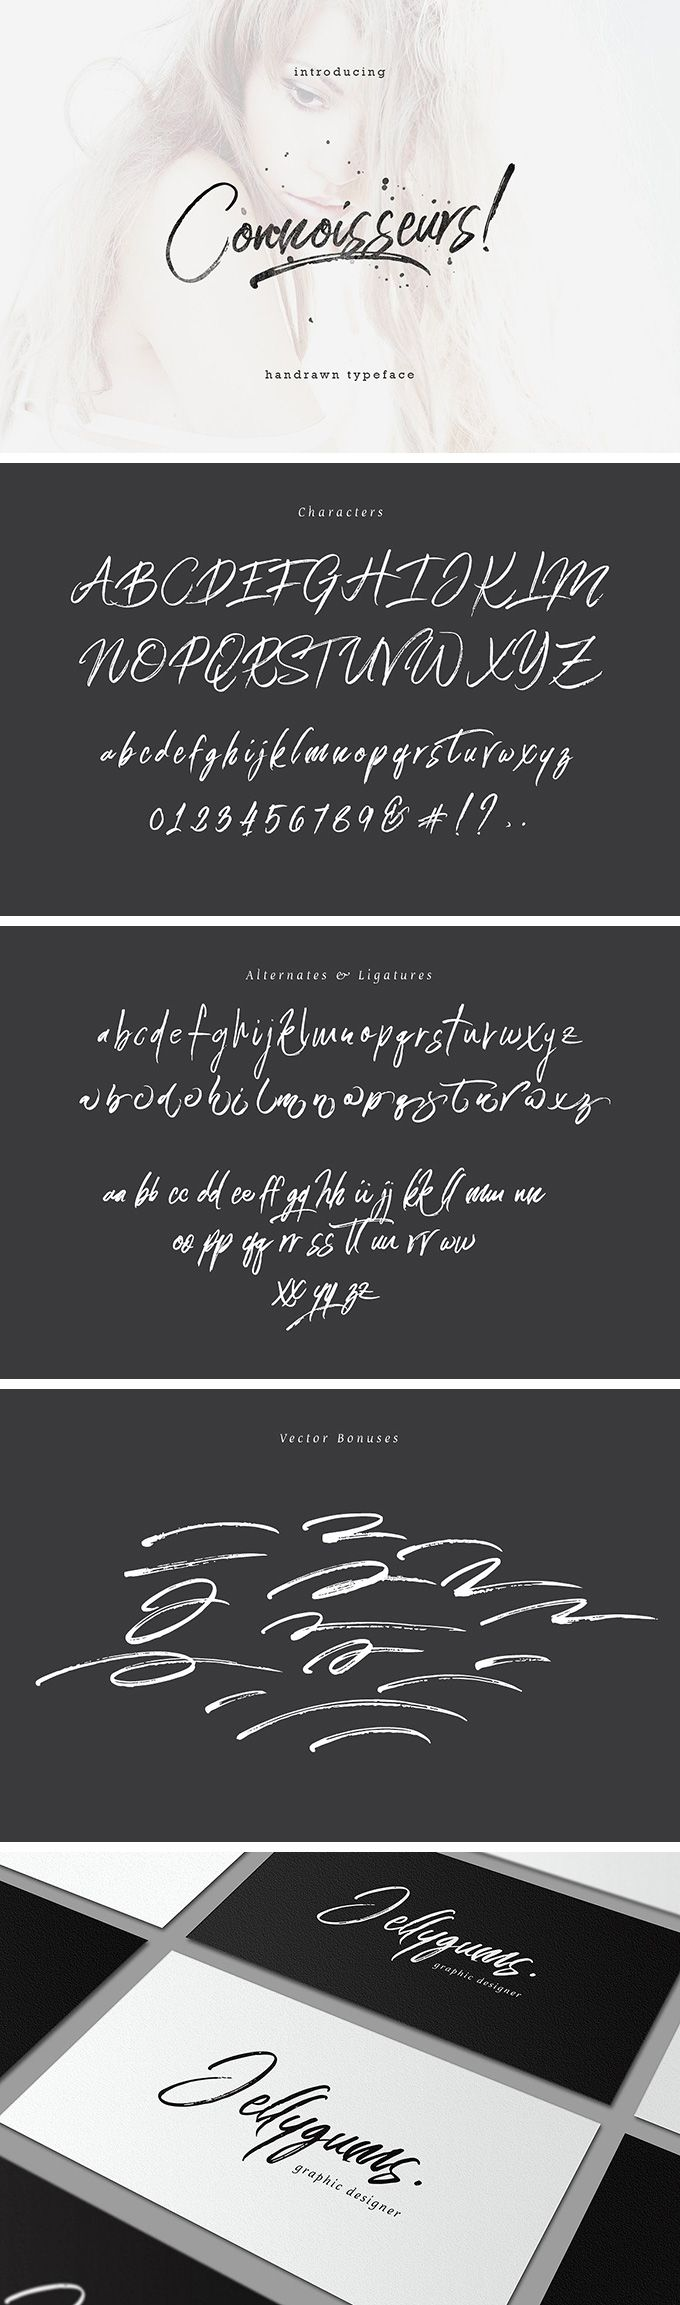 Connoisseurs Typeface - download freebie by PixelBuddha